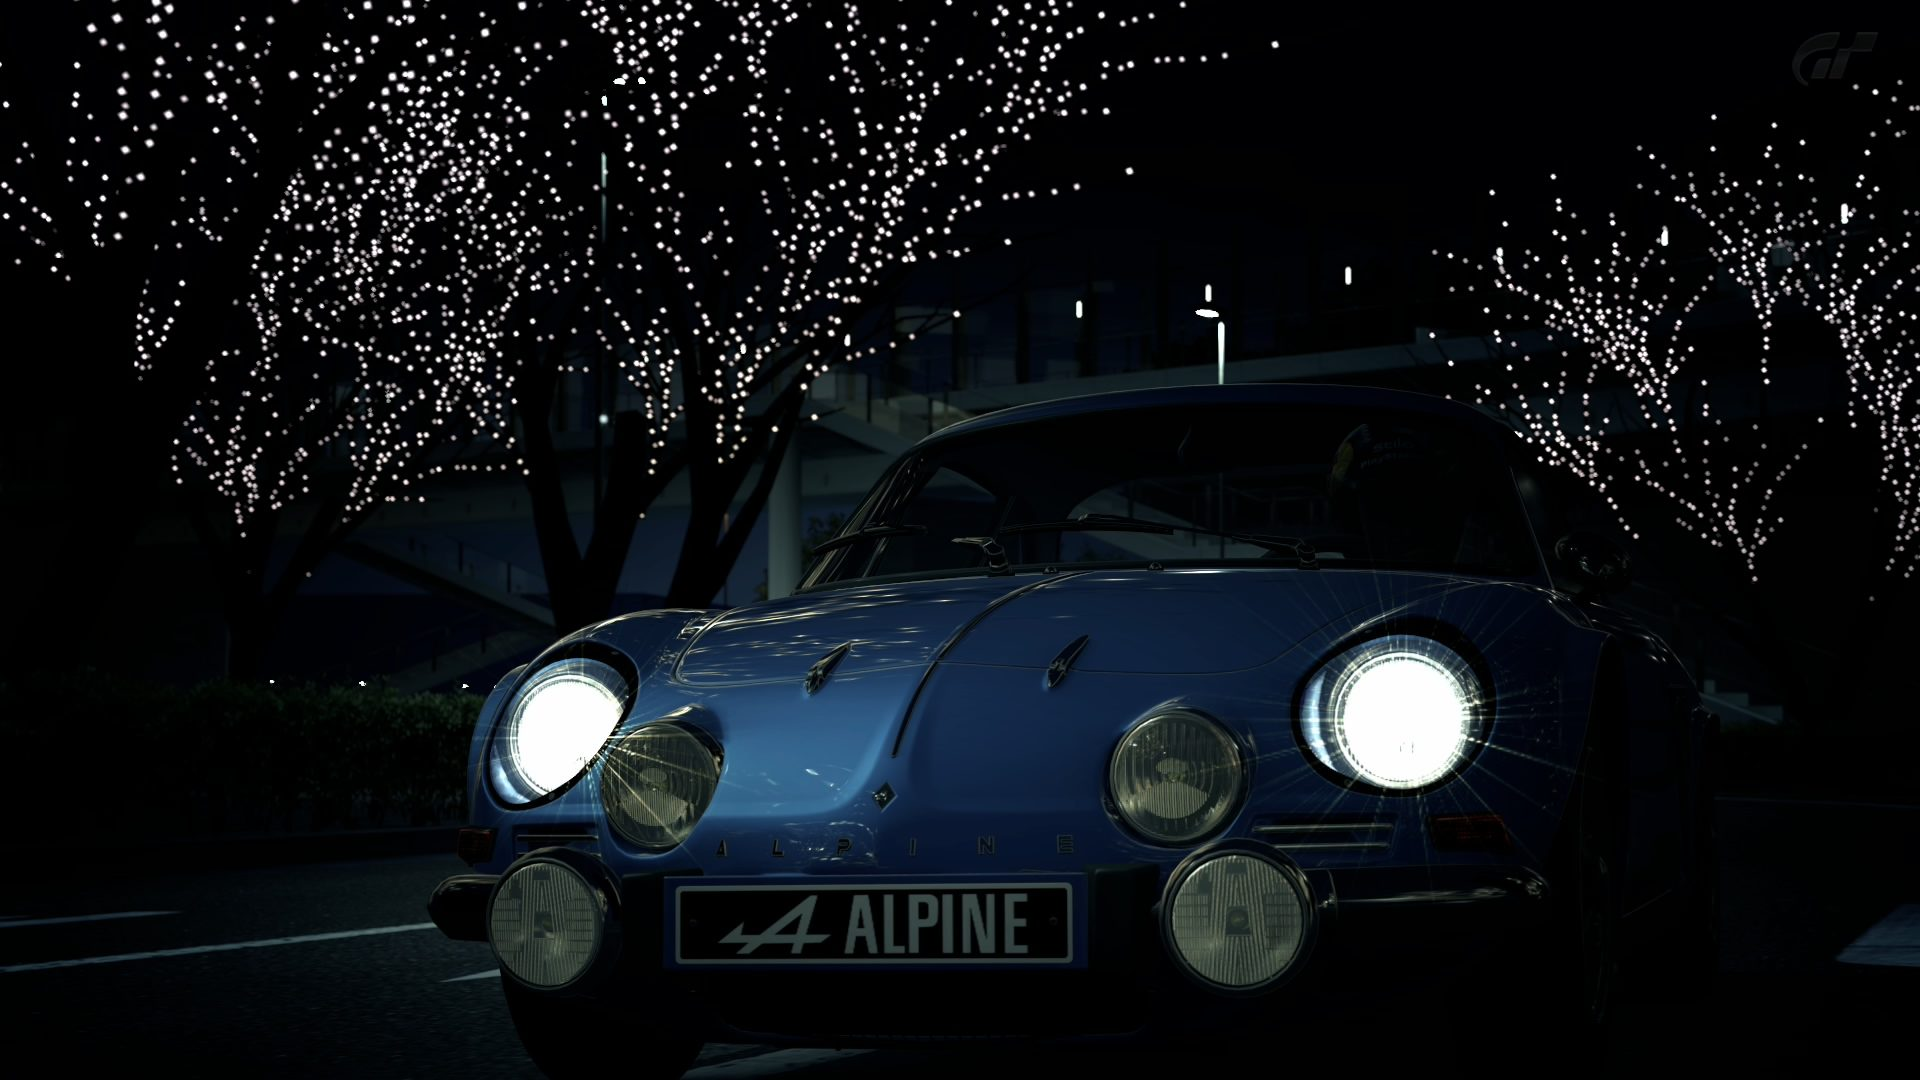 Alpine-A110-1600S-1973-Special-Stage-Route-5-0014.jpg